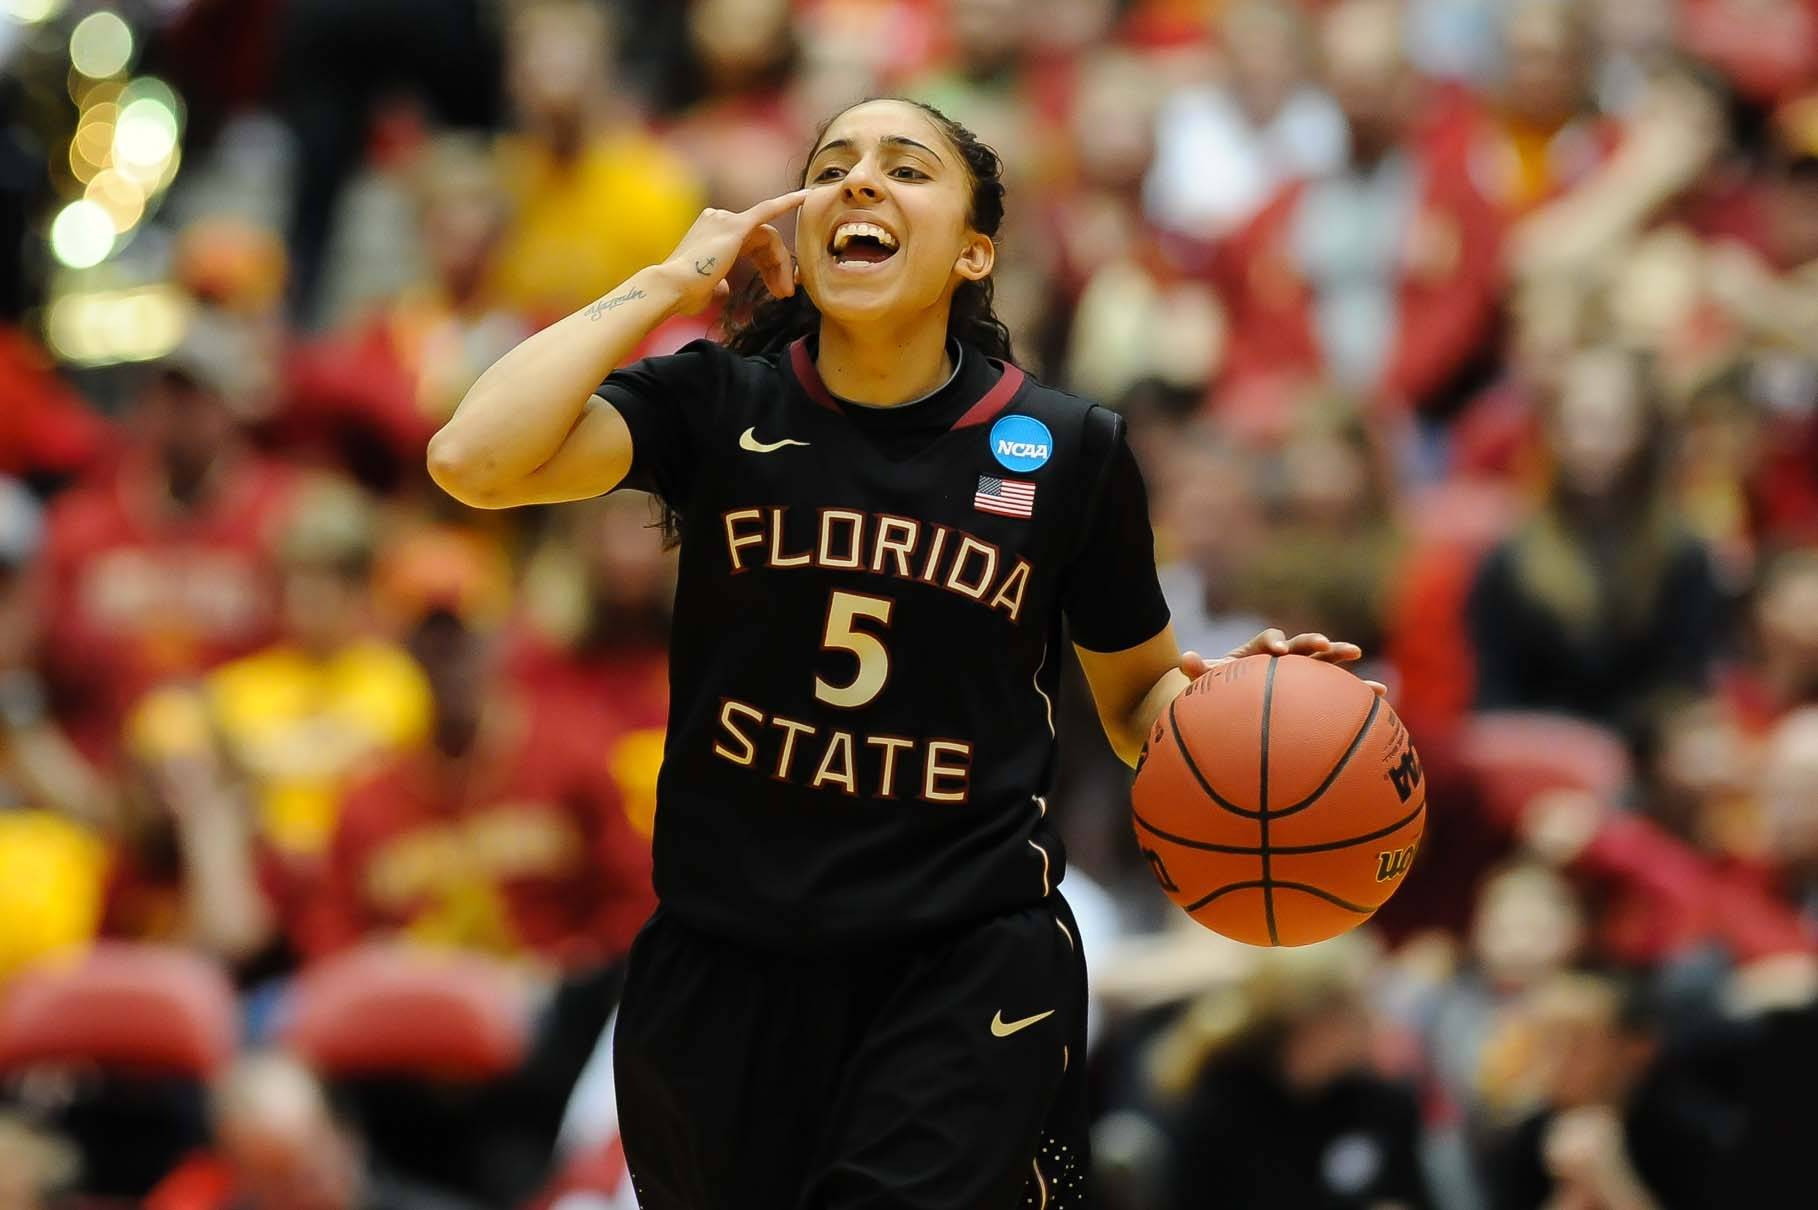 Mar 22, 2014; Ames, IA, USA; Florida State Seminoles guard Cheetah Delgado (5) calls out a play against the Iowa State Cyclones in the second half of a women's college basketball game in the first round of the NCAA Tournament at James H. Hilton Coliseum. Florida State defeated Iowa State 55-44. Mandatory Credit: Steven Branscombe-USA TODAY Sports